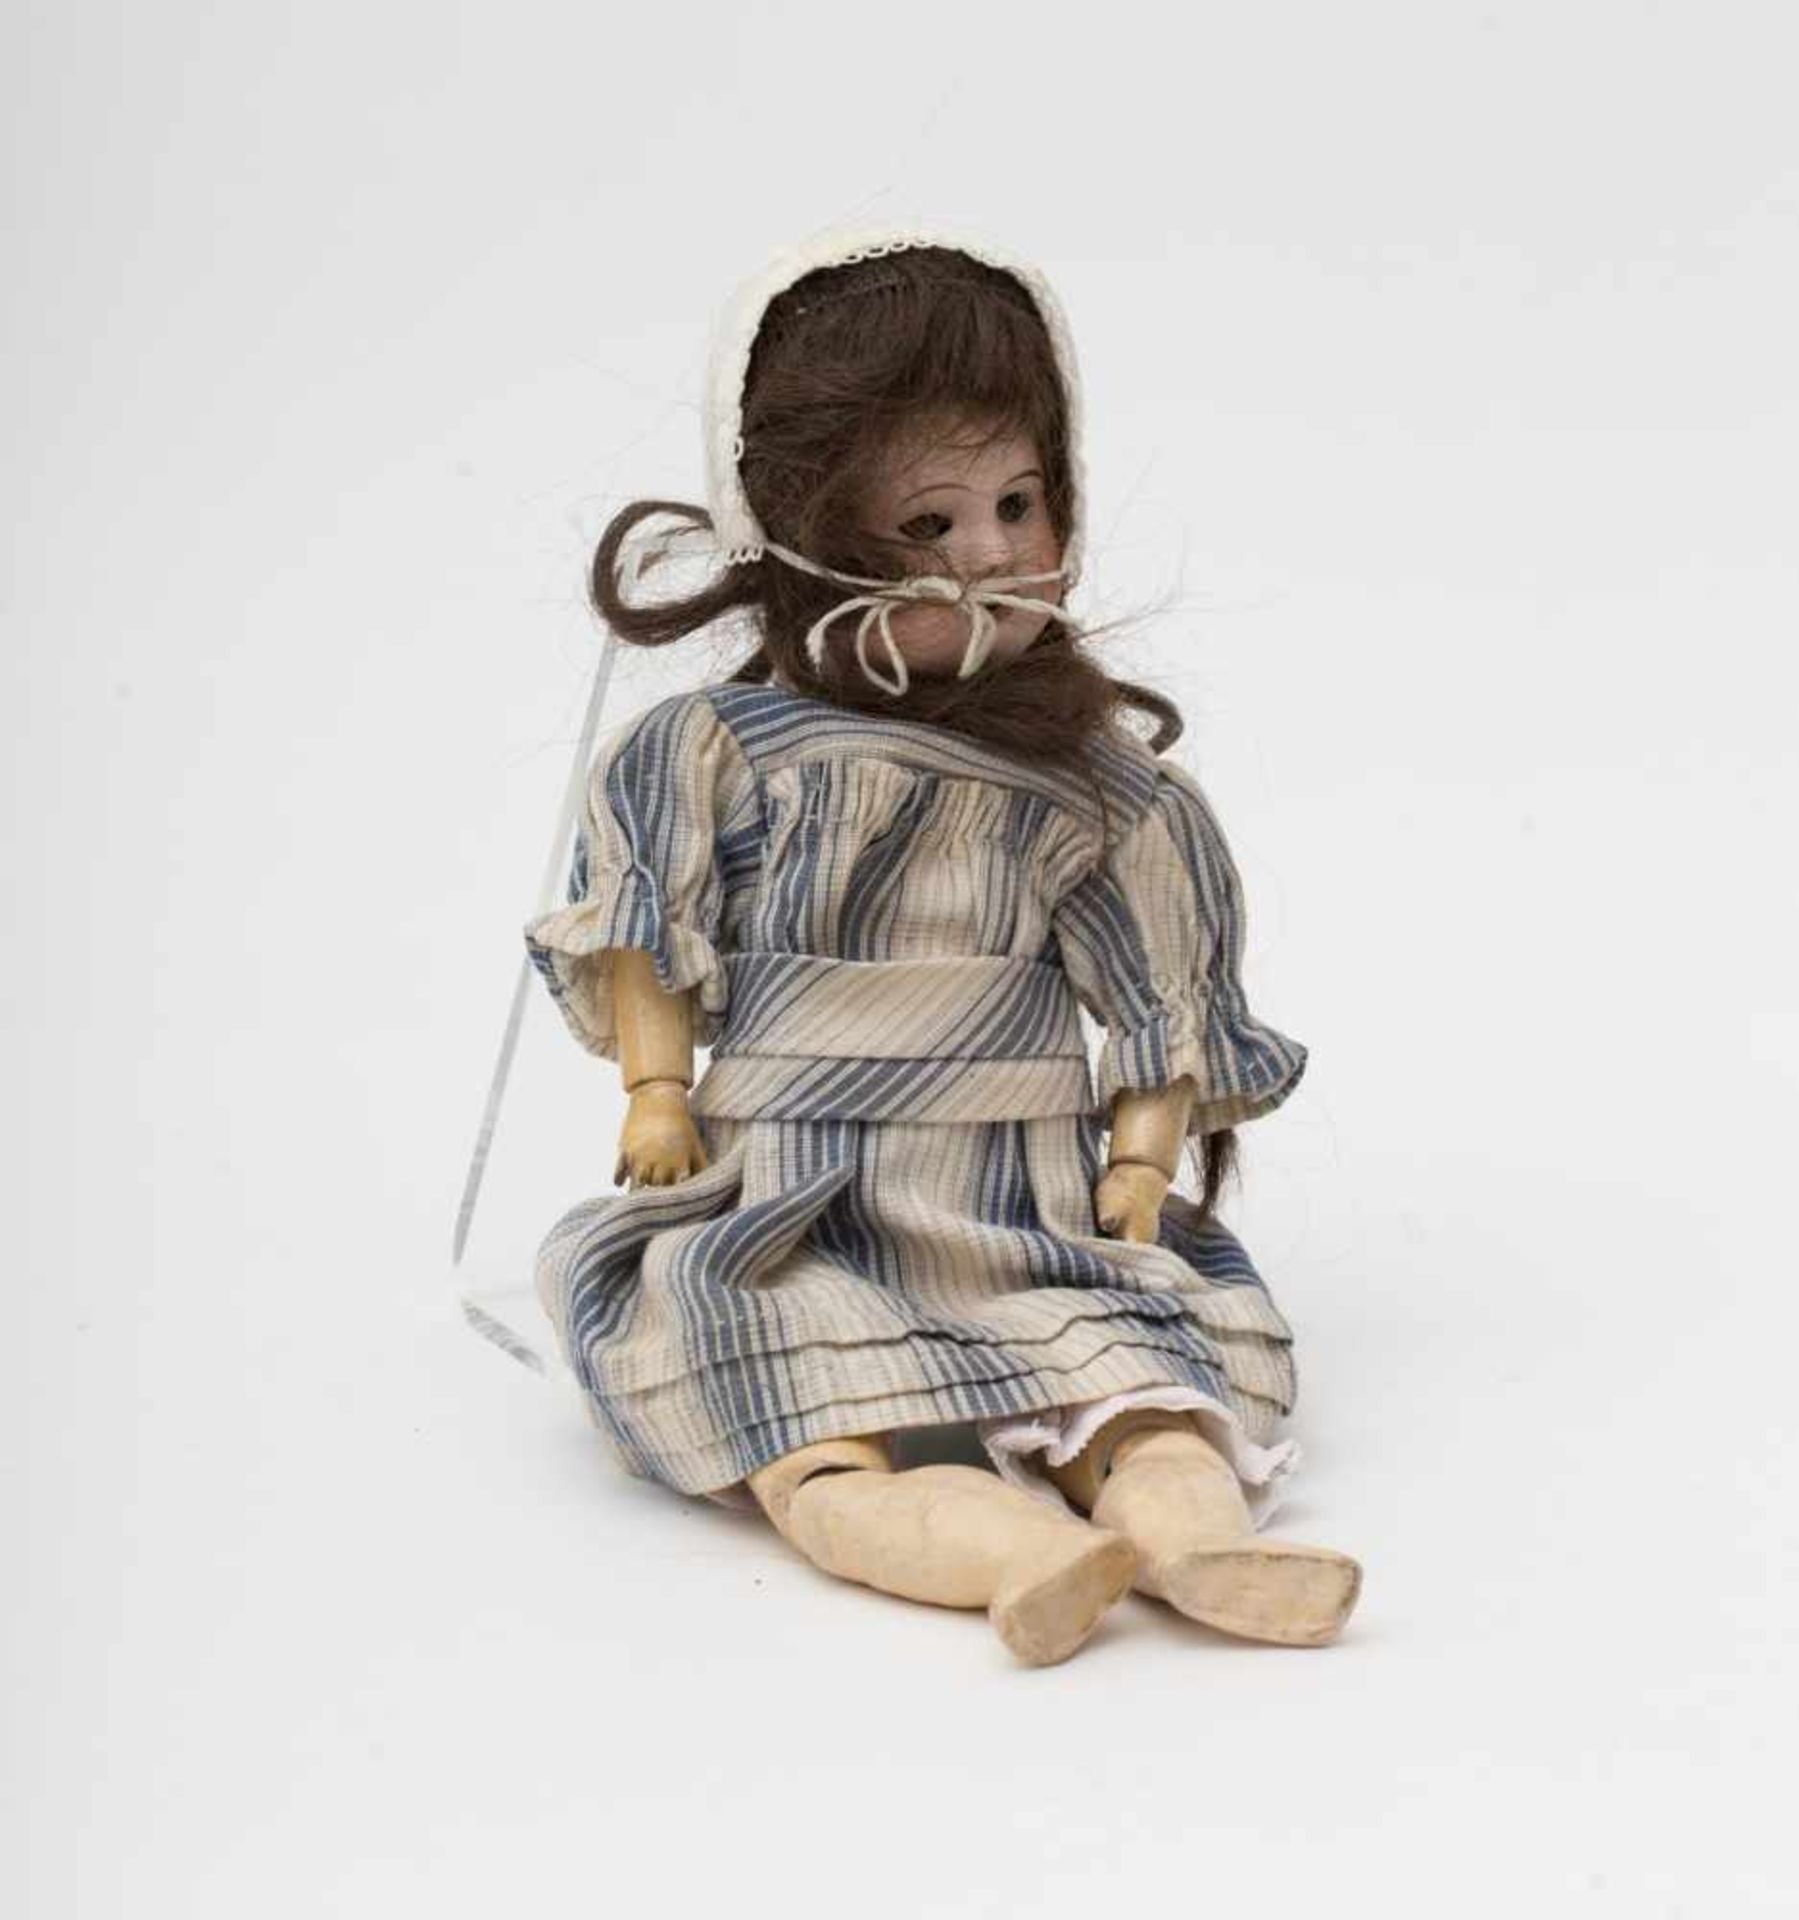 """SFBJ doll With biscuit head, open mouth, branded """"SFBJ 60 4/0"""", brown sleeping eyes, original"""